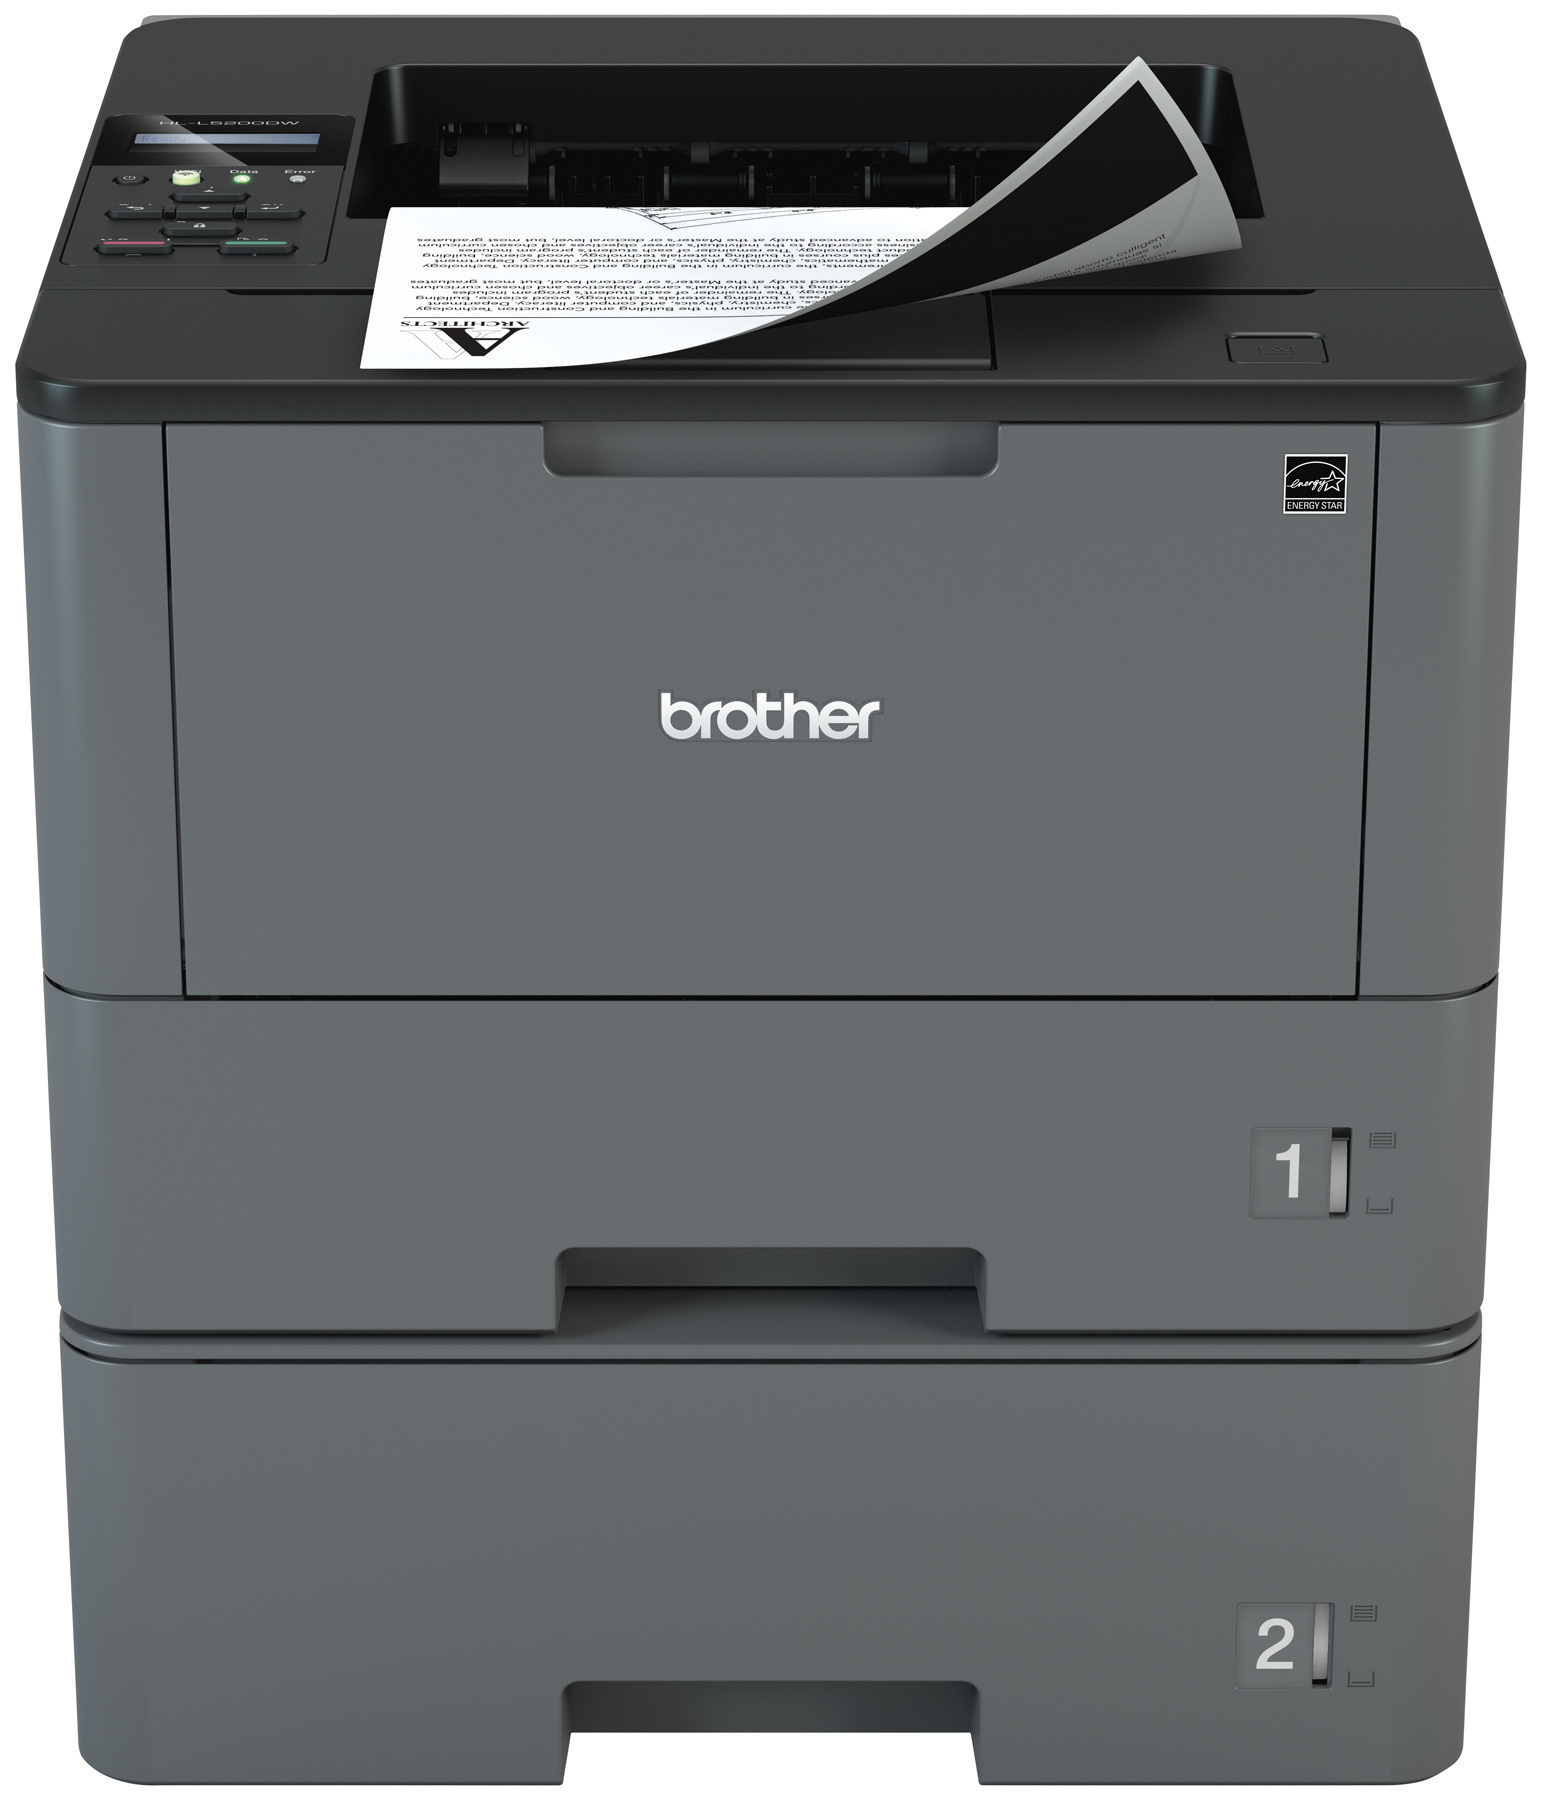 H470B MOBILE PRINTER WINDOWS 10 DRIVER DOWNLOAD